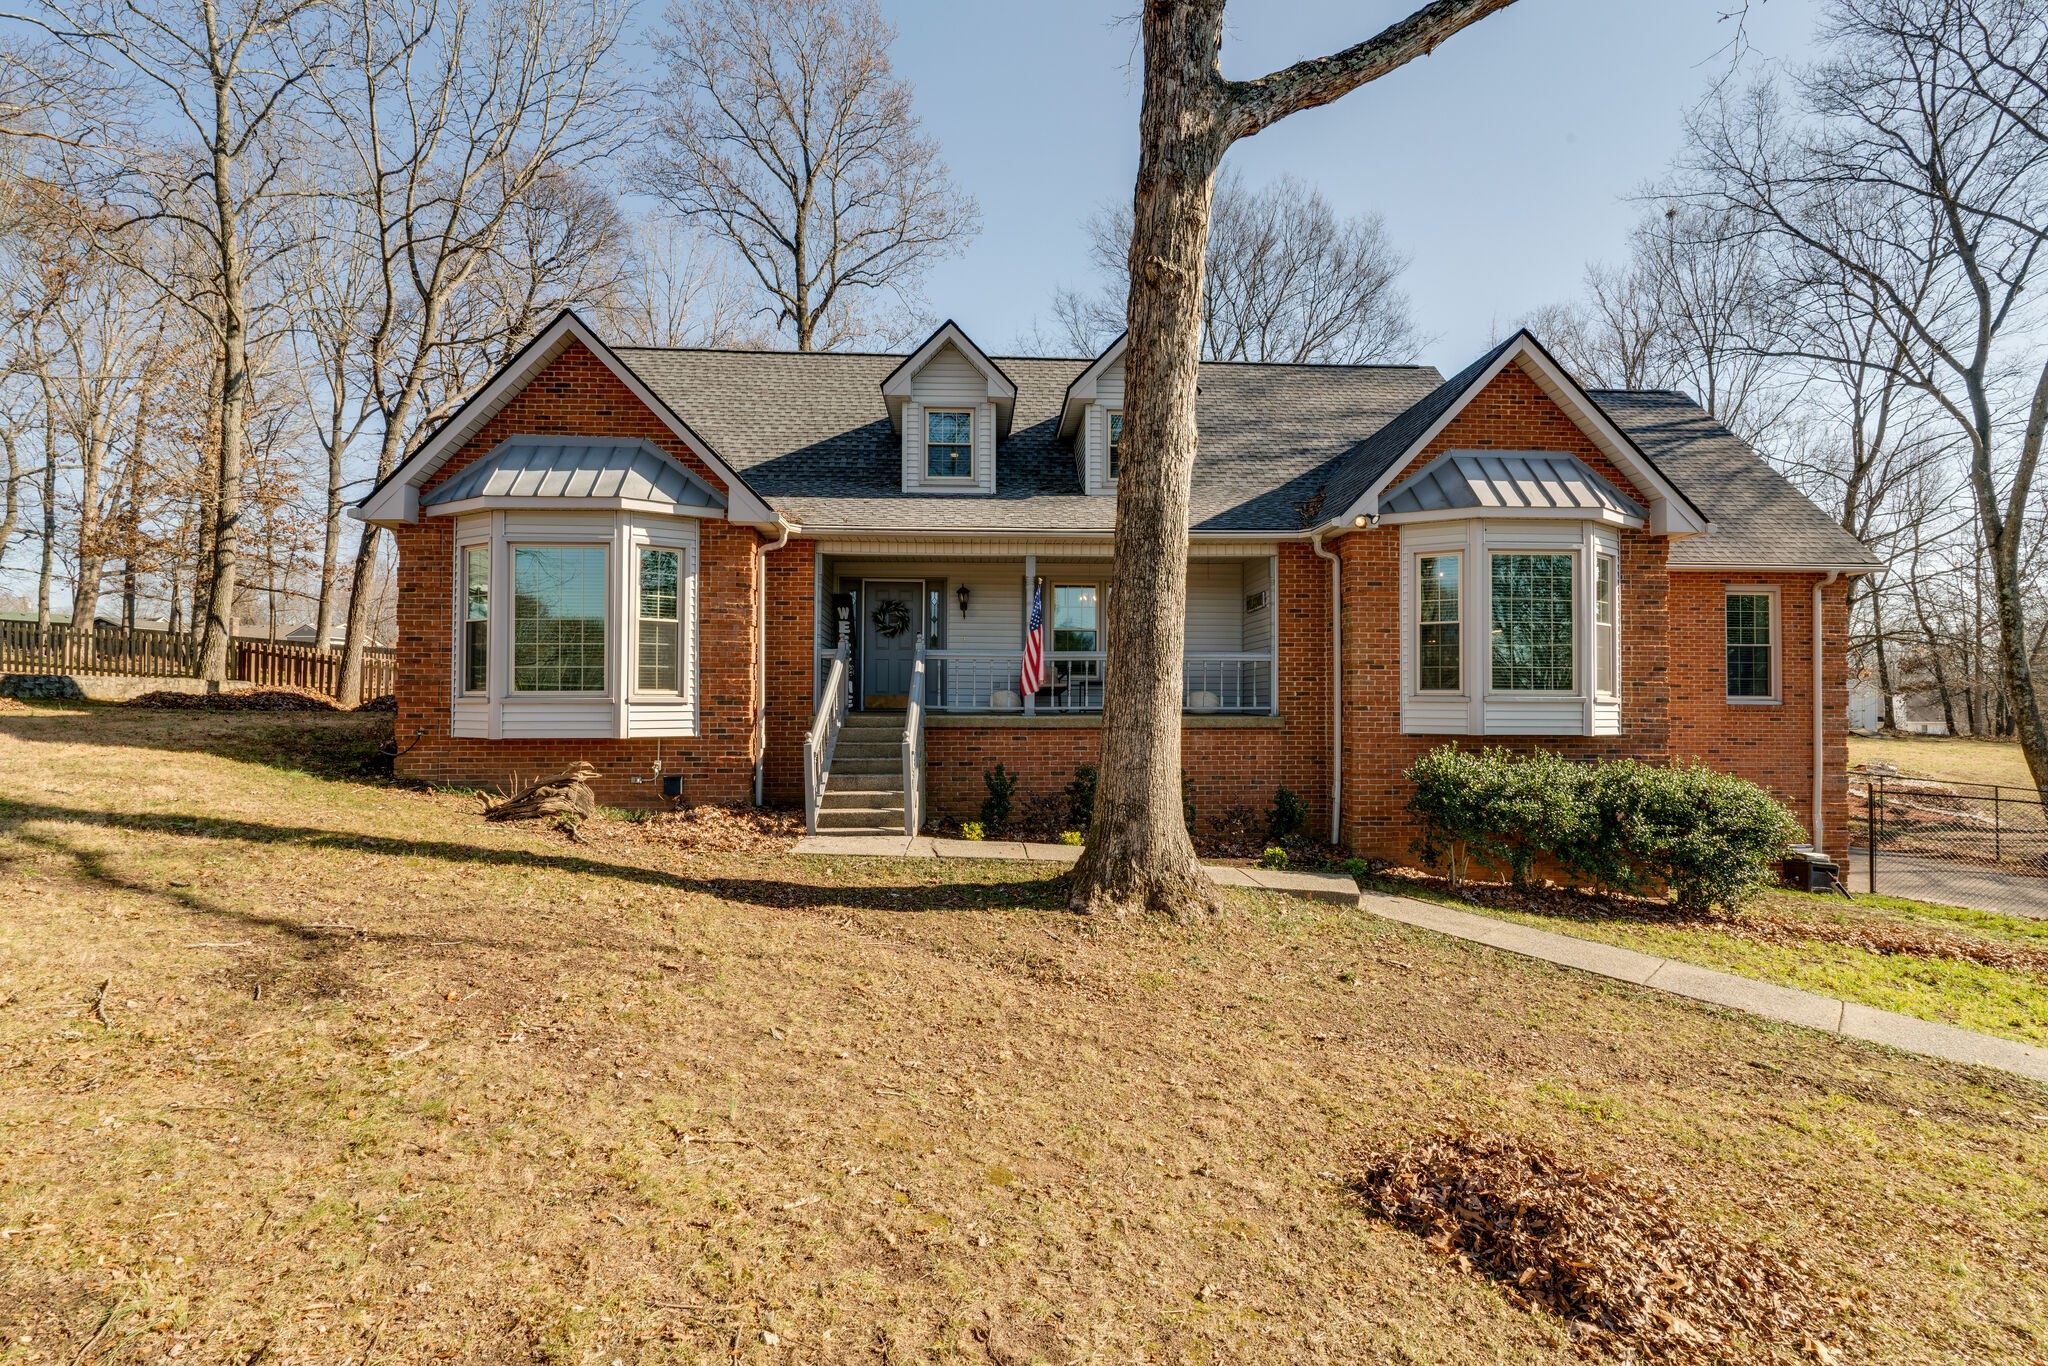 516 Tyler Ct Property Photo - Cottontown, TN real estate listing